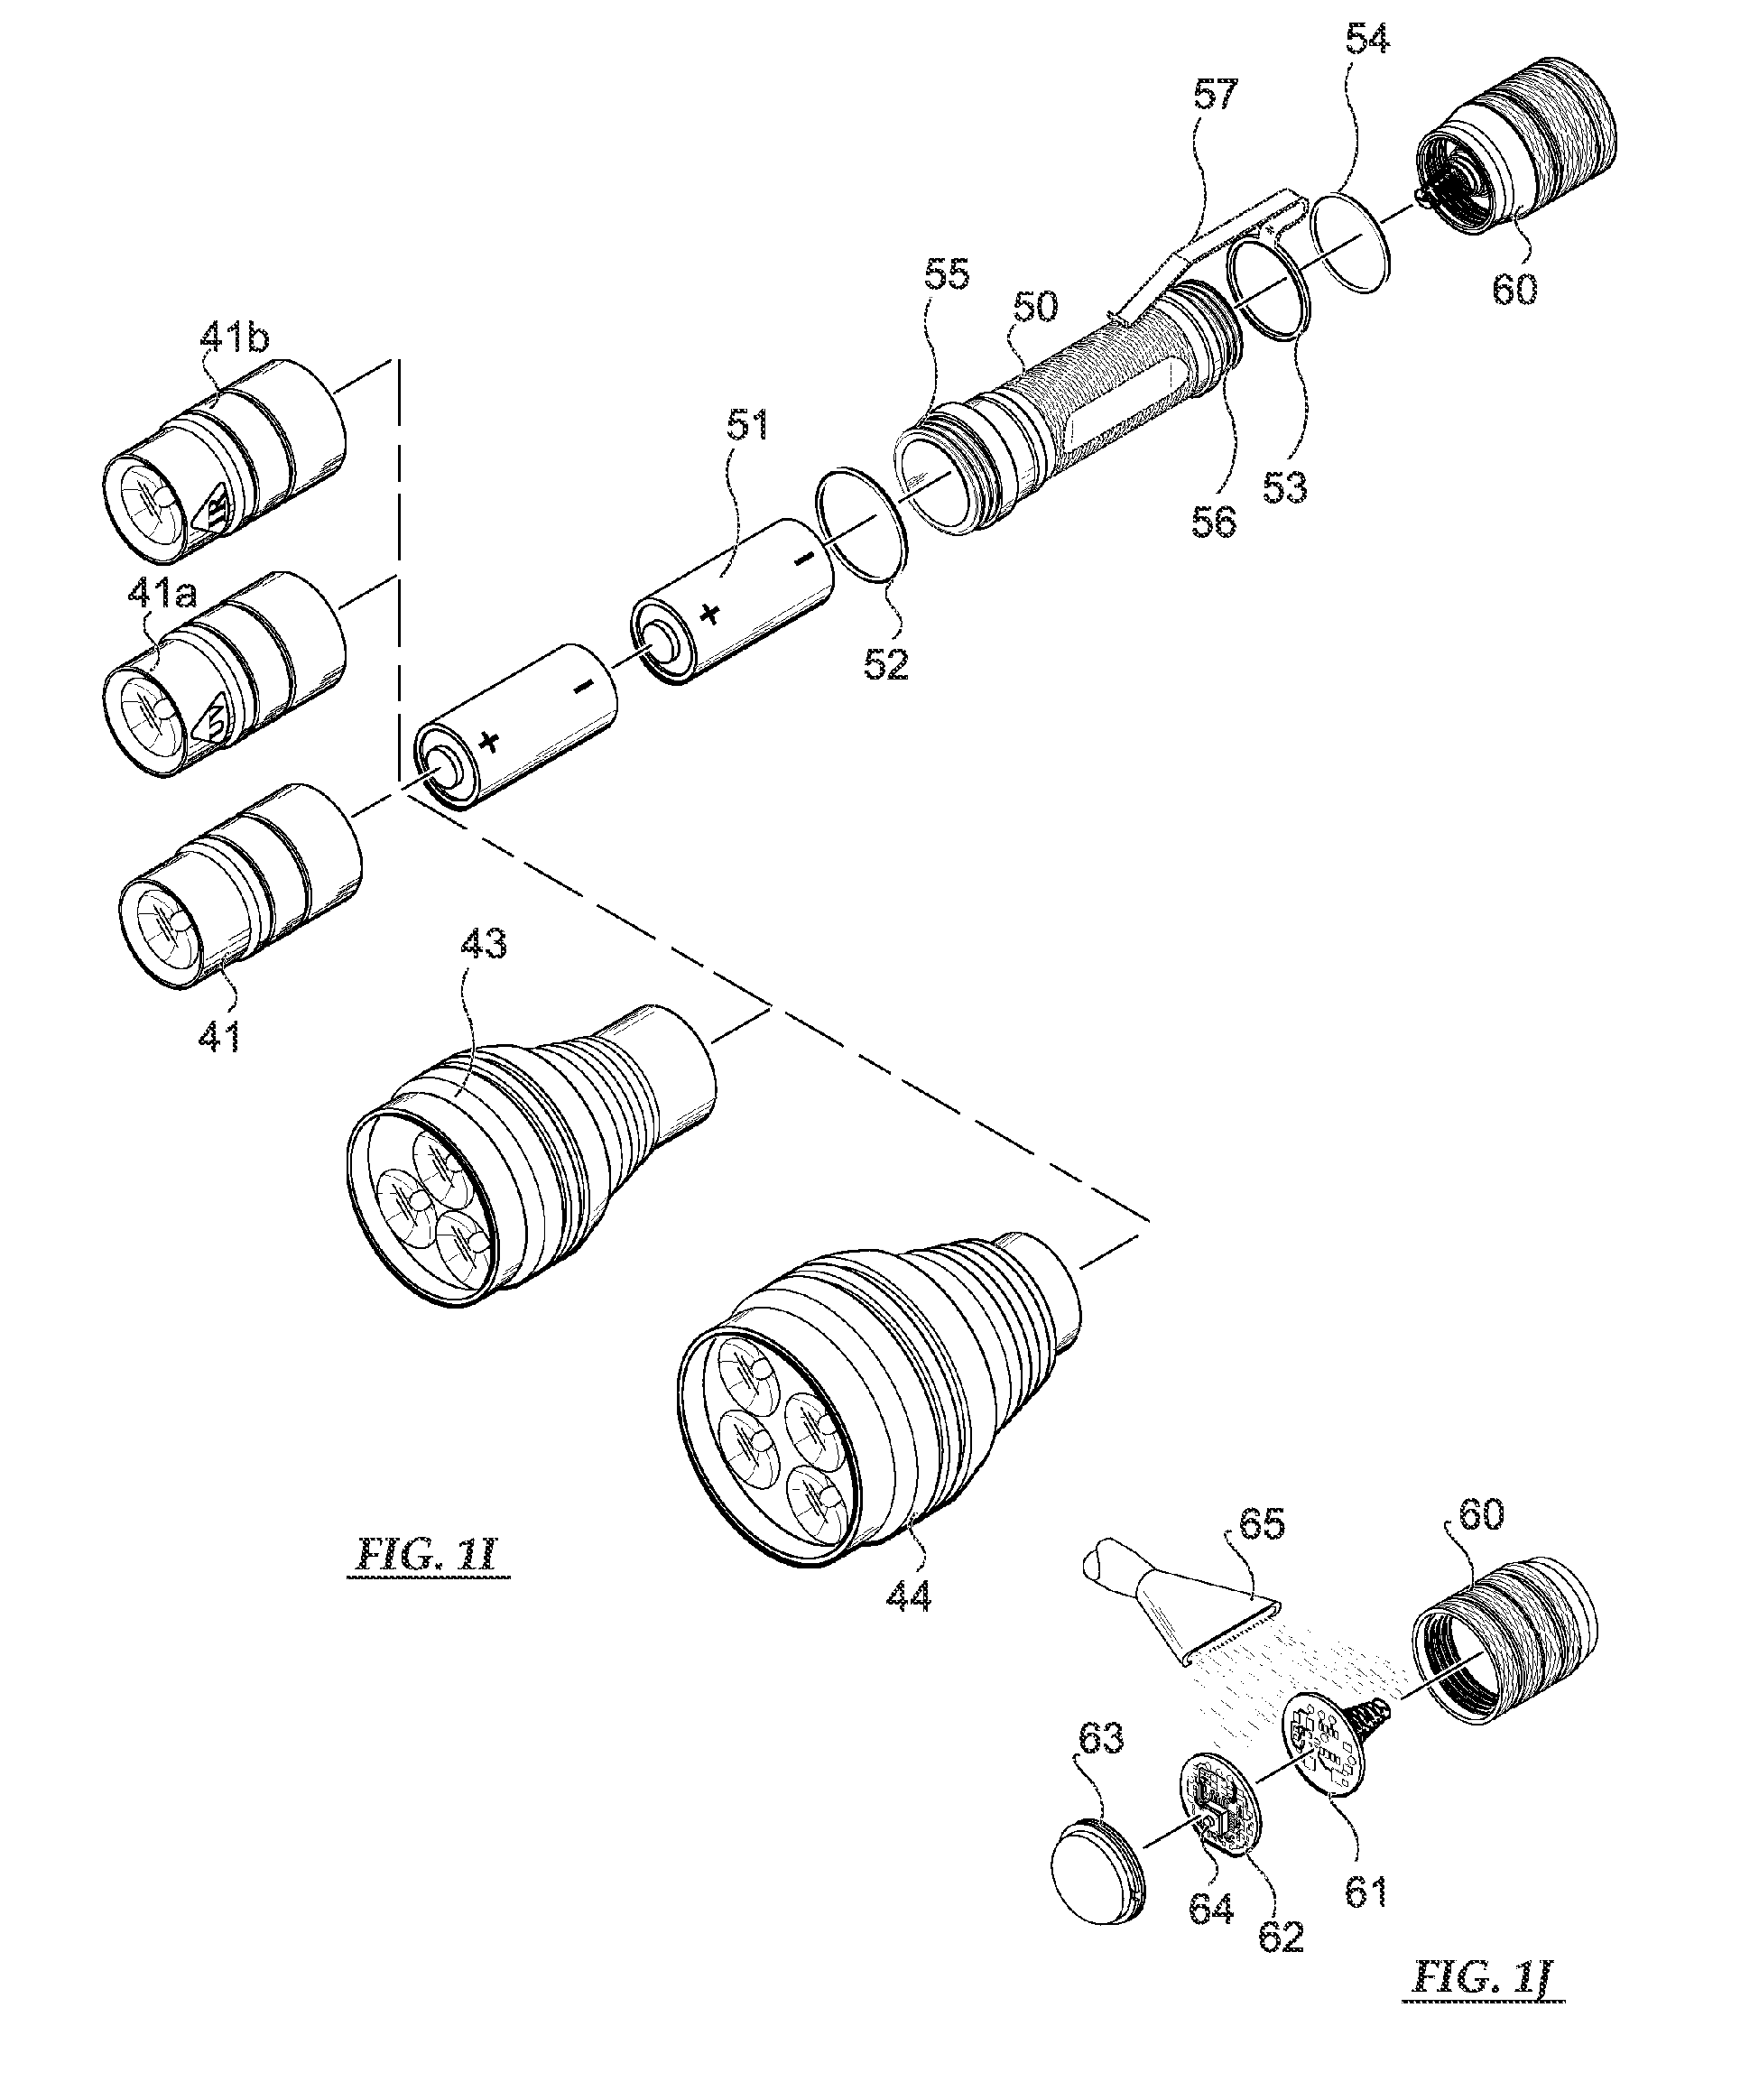 patent ep2345864a2 - smart tactical flashlight